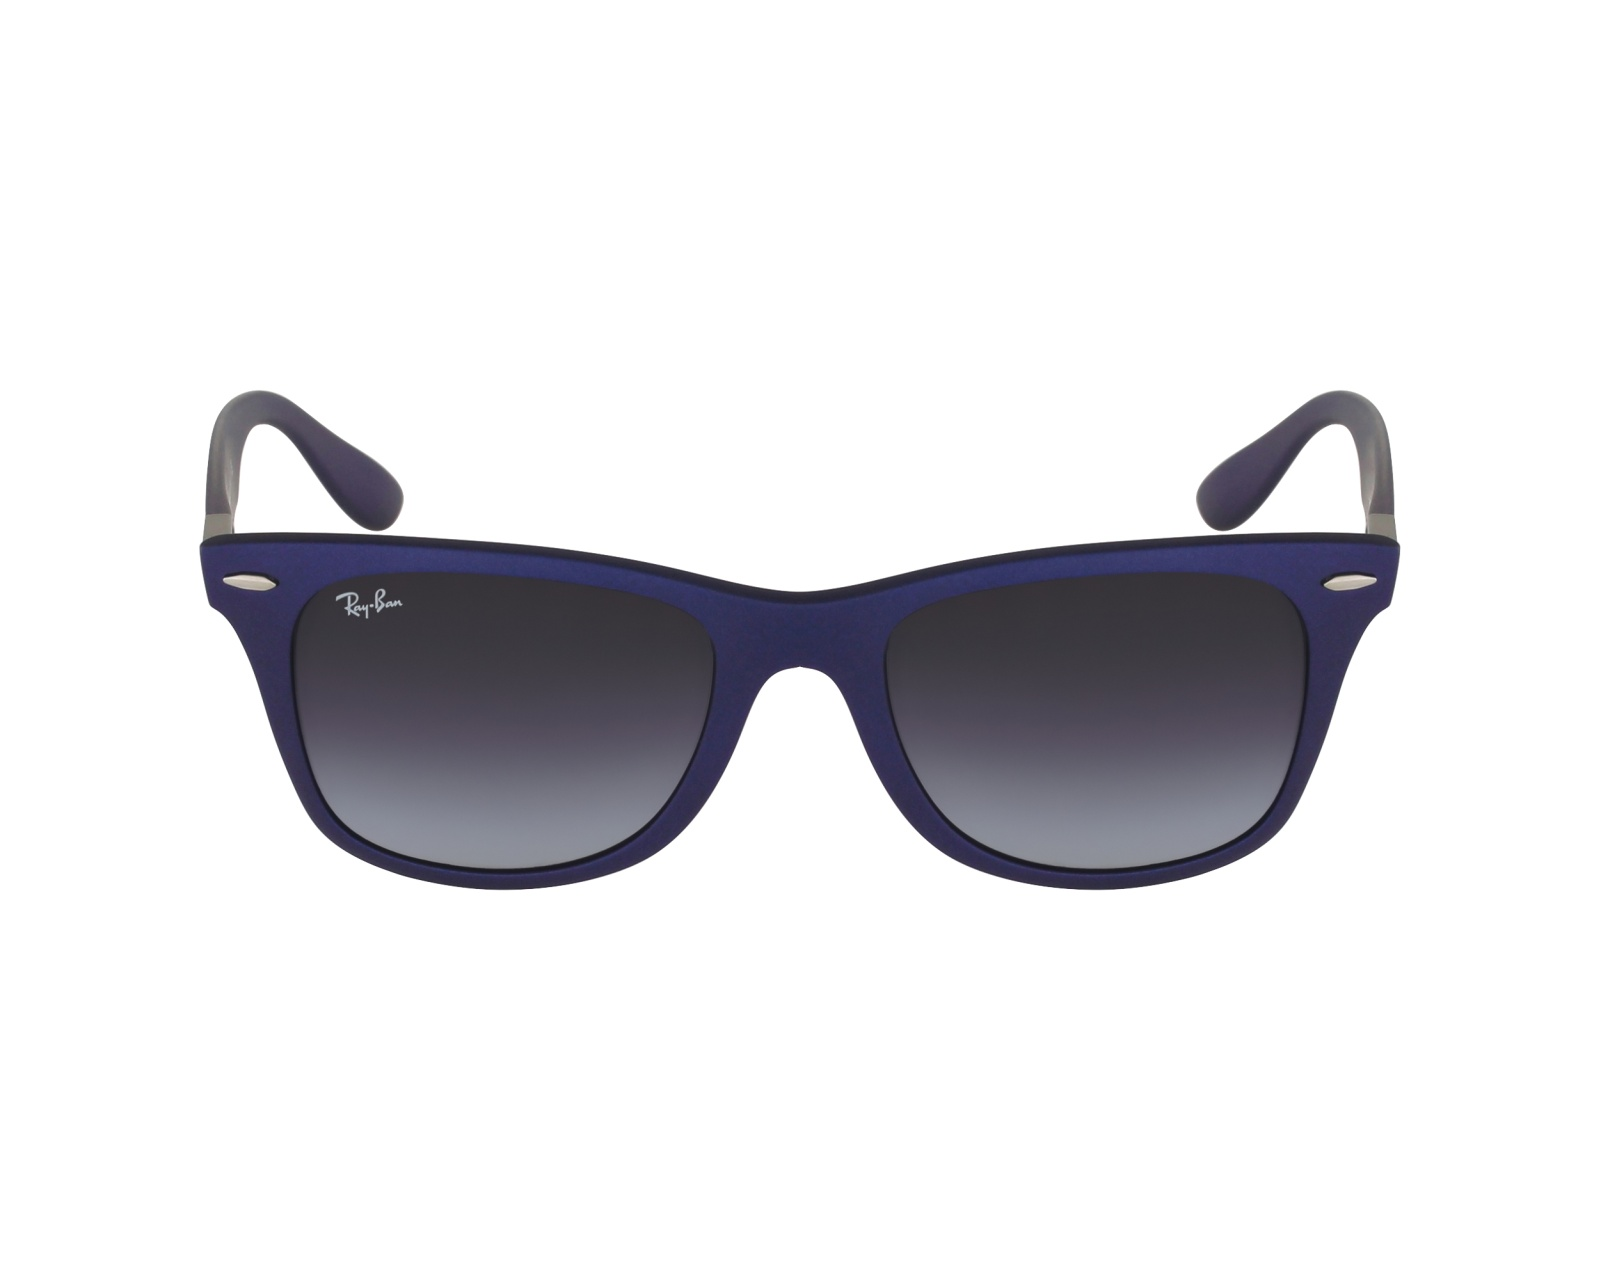 c7a7a983fd Sunglasses Ray-Ban RB-4195 6015 8G 52-20 Blue profile view